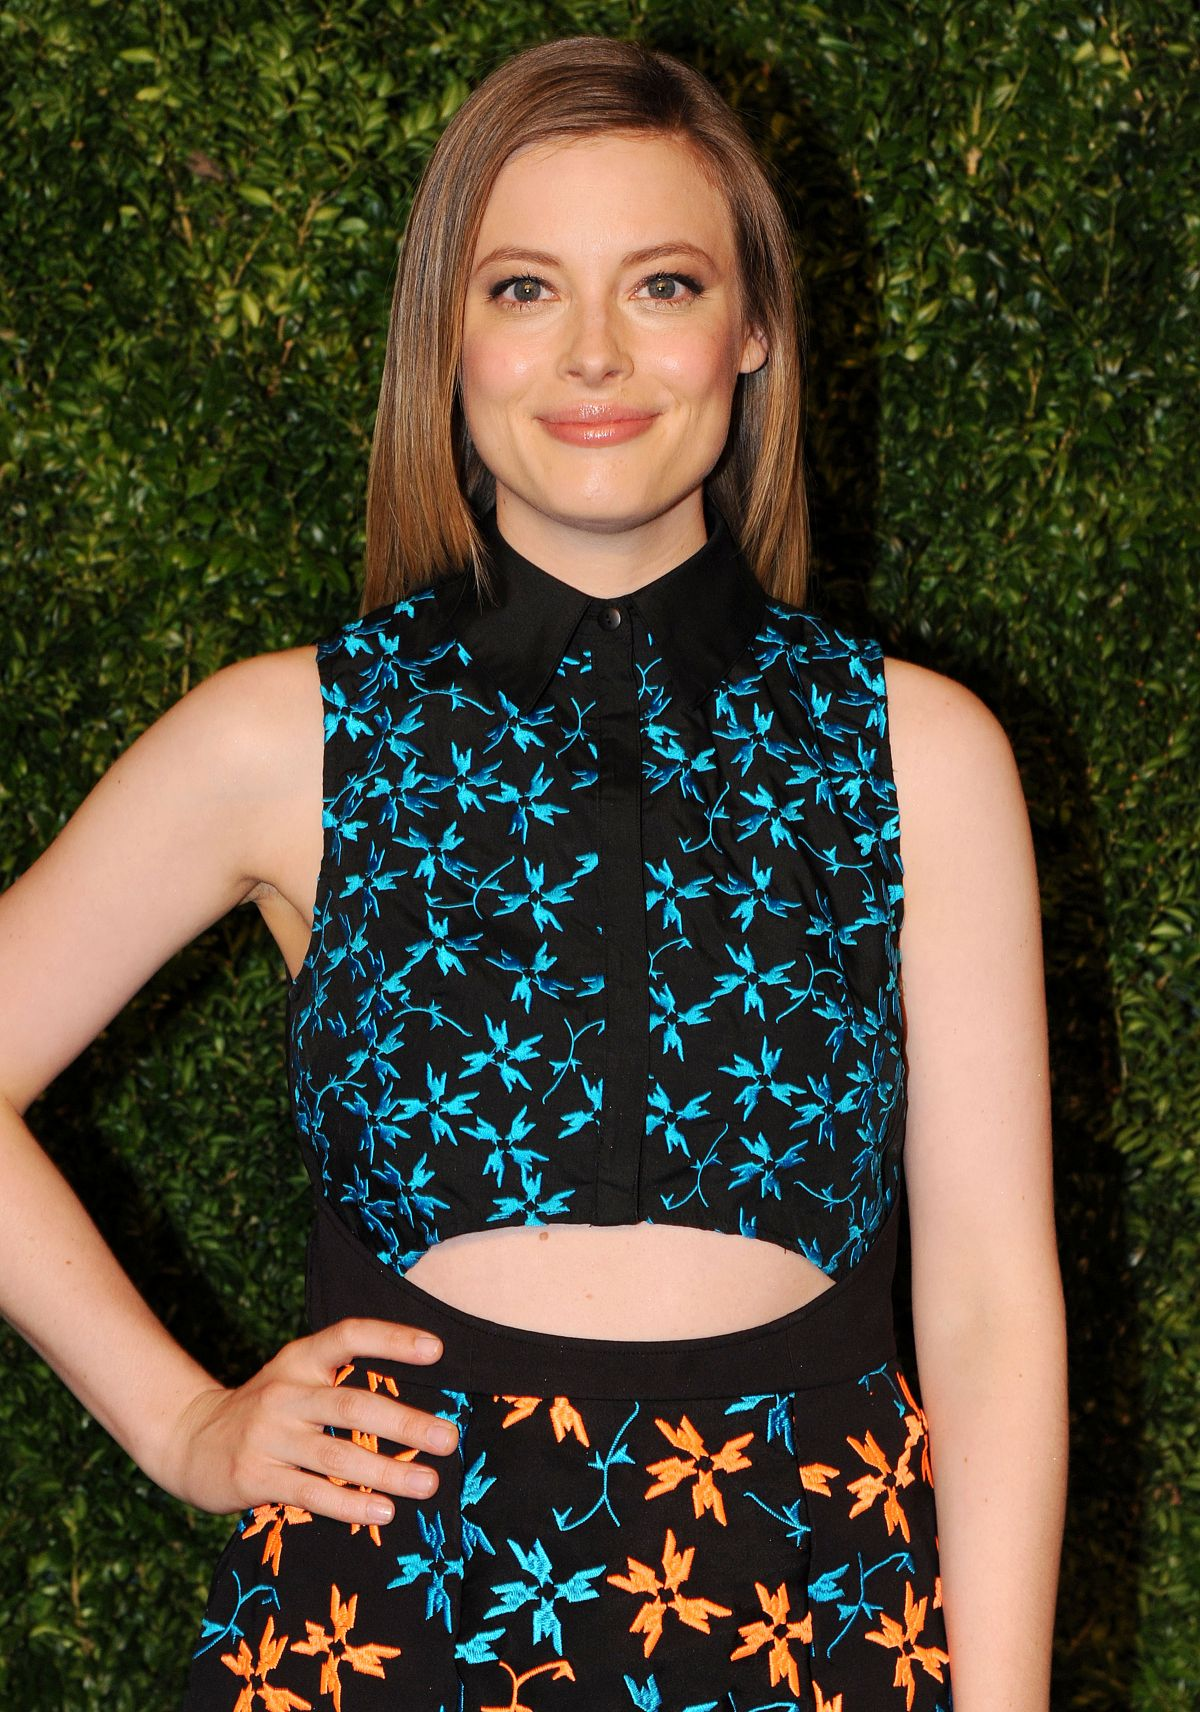 GILLIAN JACOBS at 2014 Cfda/Vogue Fashion Fund Awards in New York